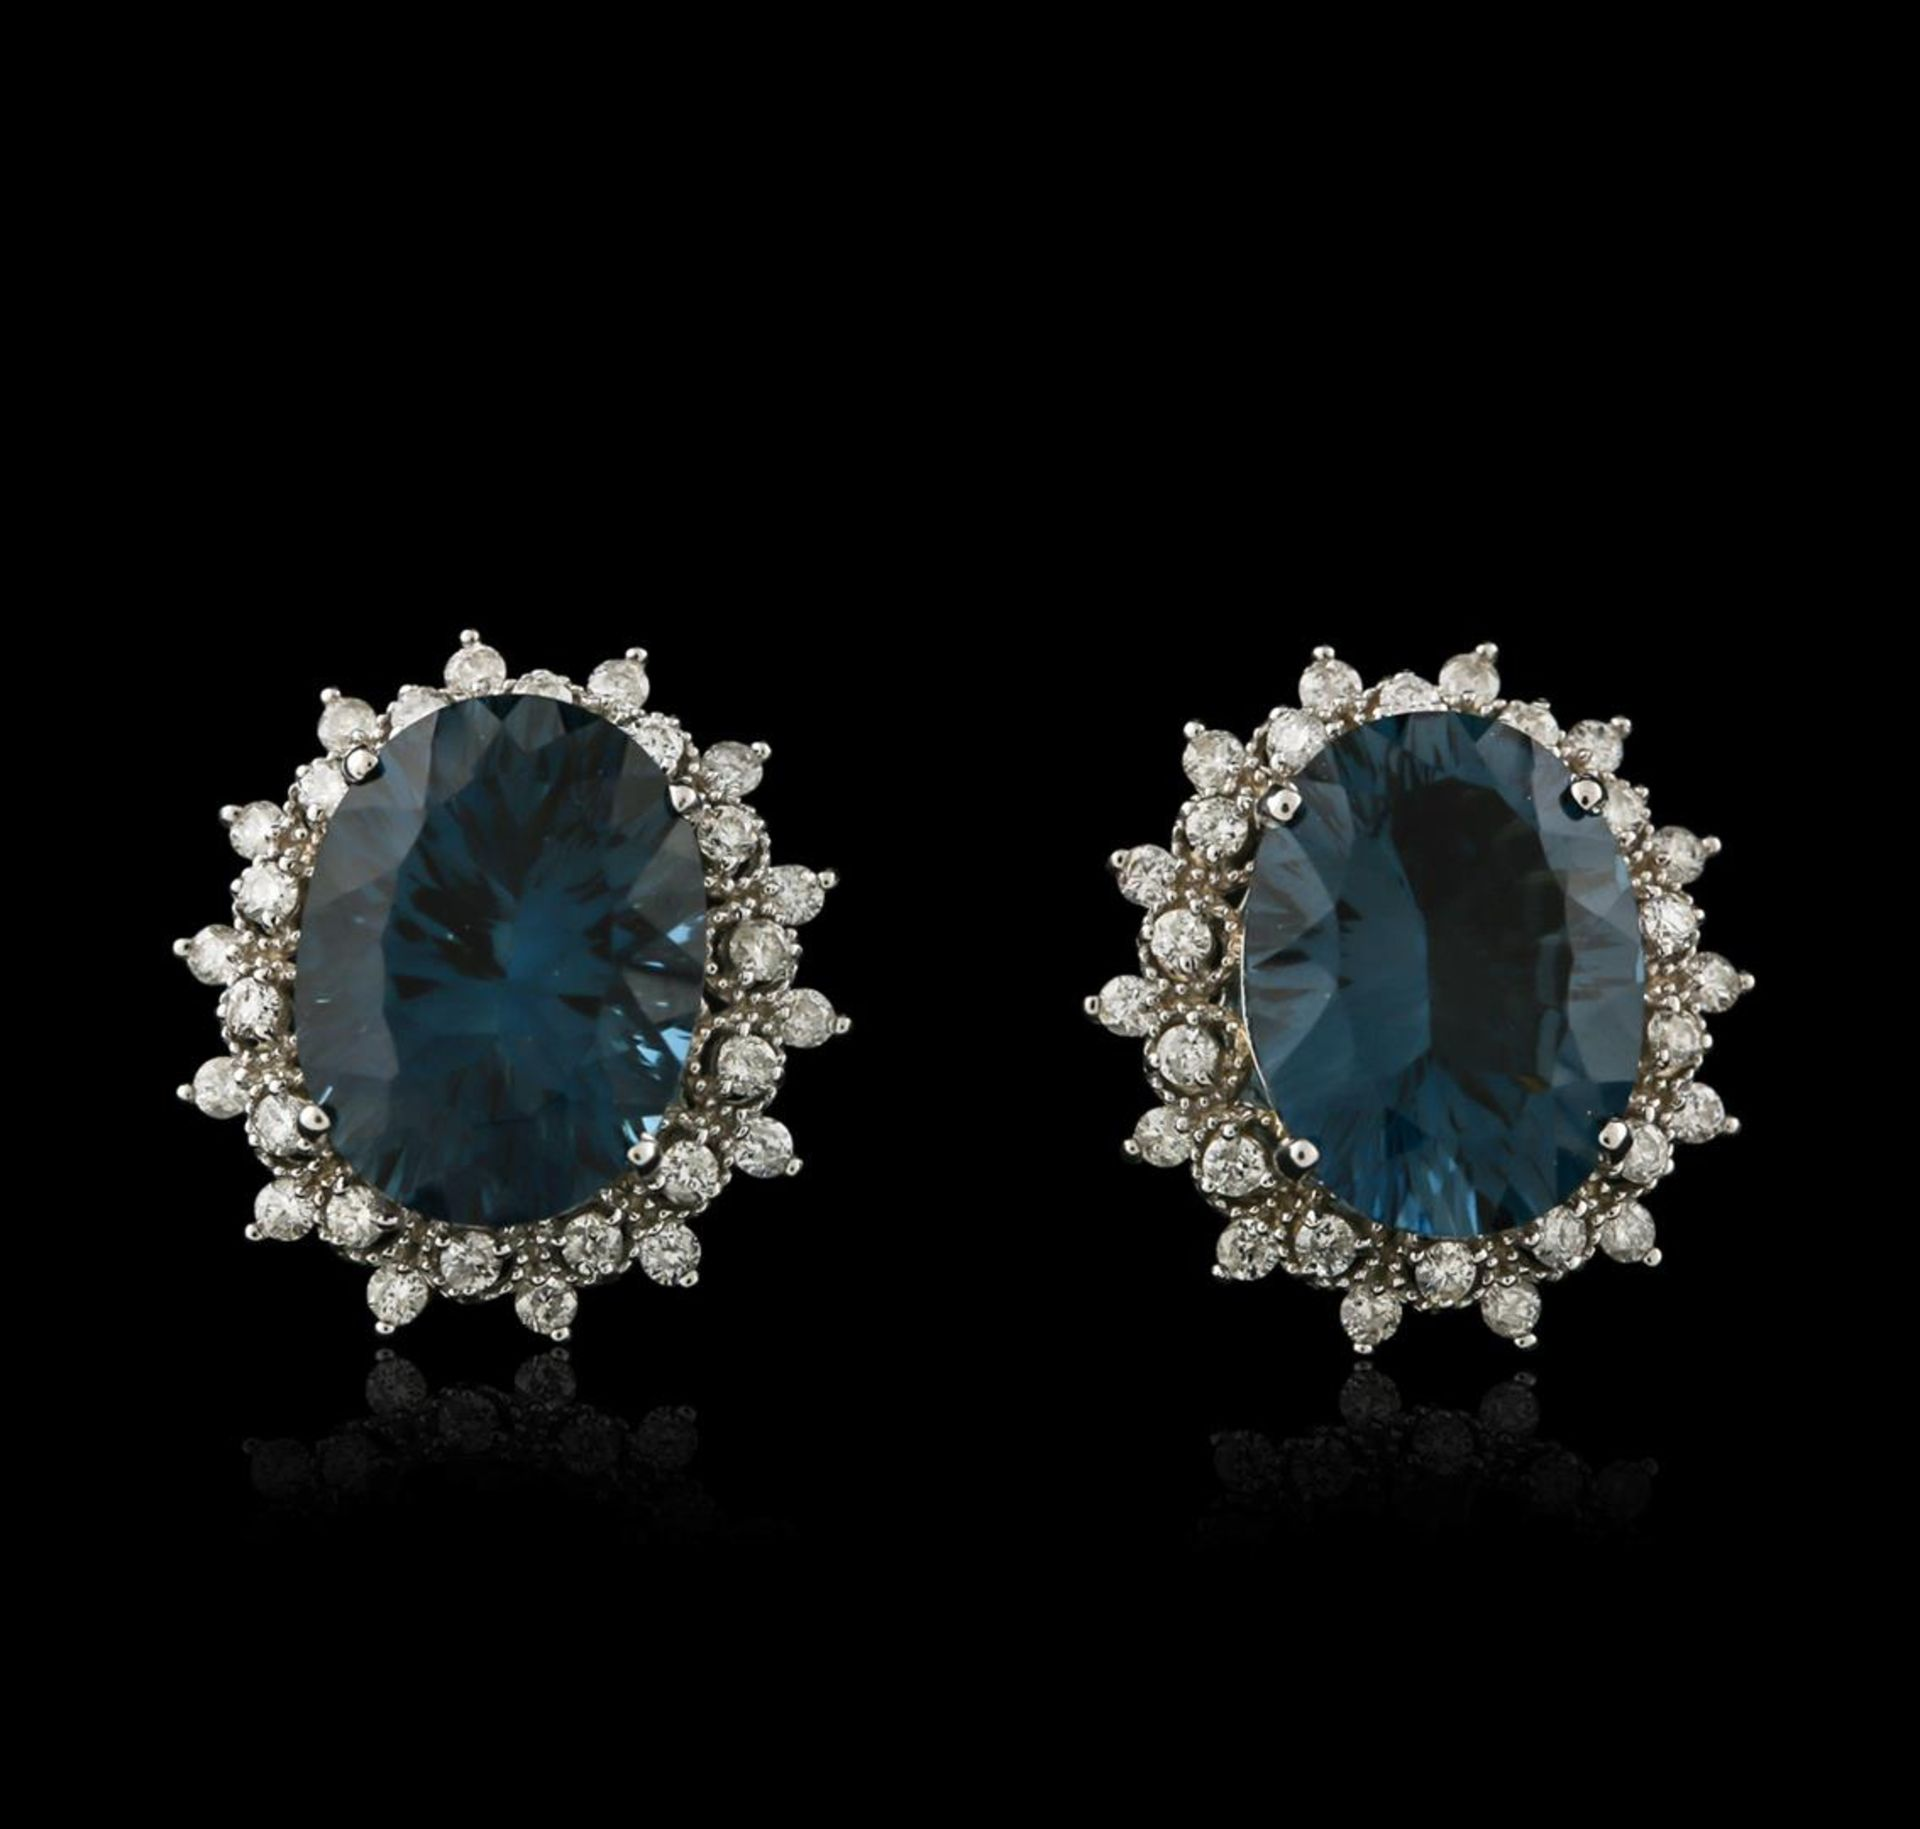 14KT White Gold 17.00 ctw Blue Topaz and Diamond Earrings - Image 2 of 3